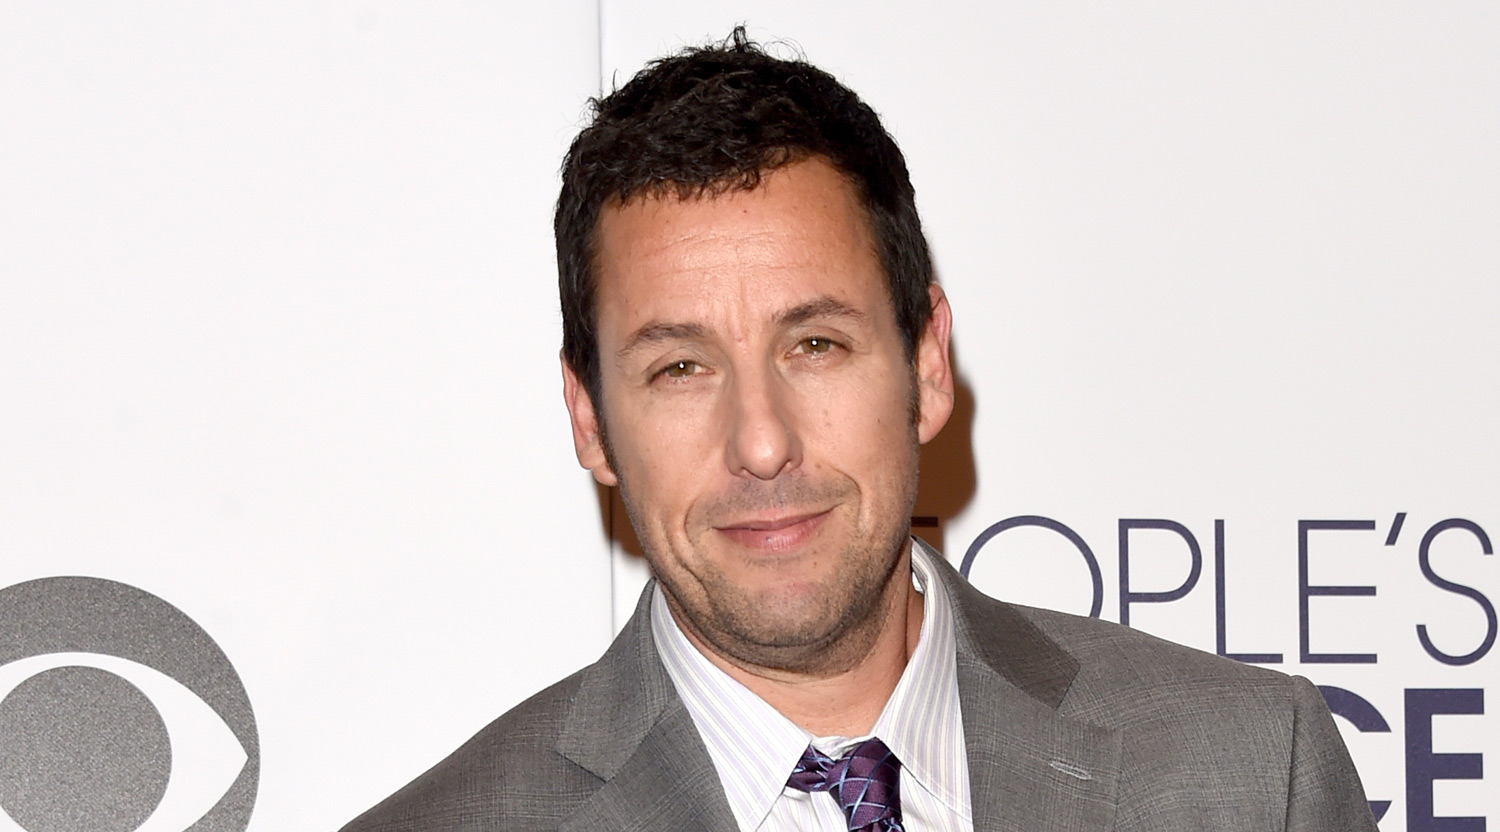 Richest Actors In Hollywood - Adam Sandler